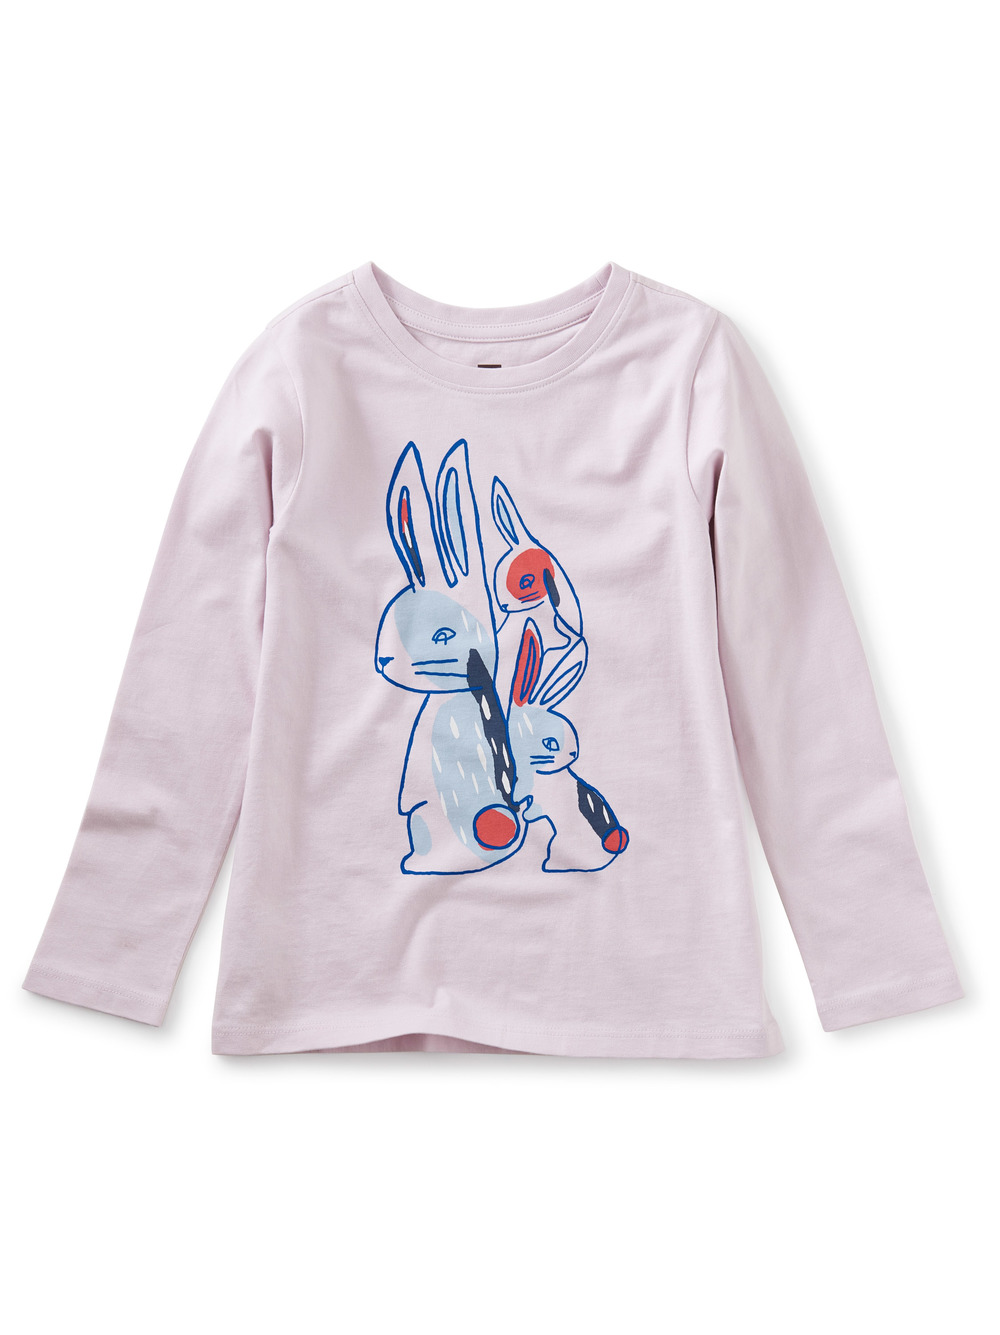 Spotted Rabbit Graphic Tee